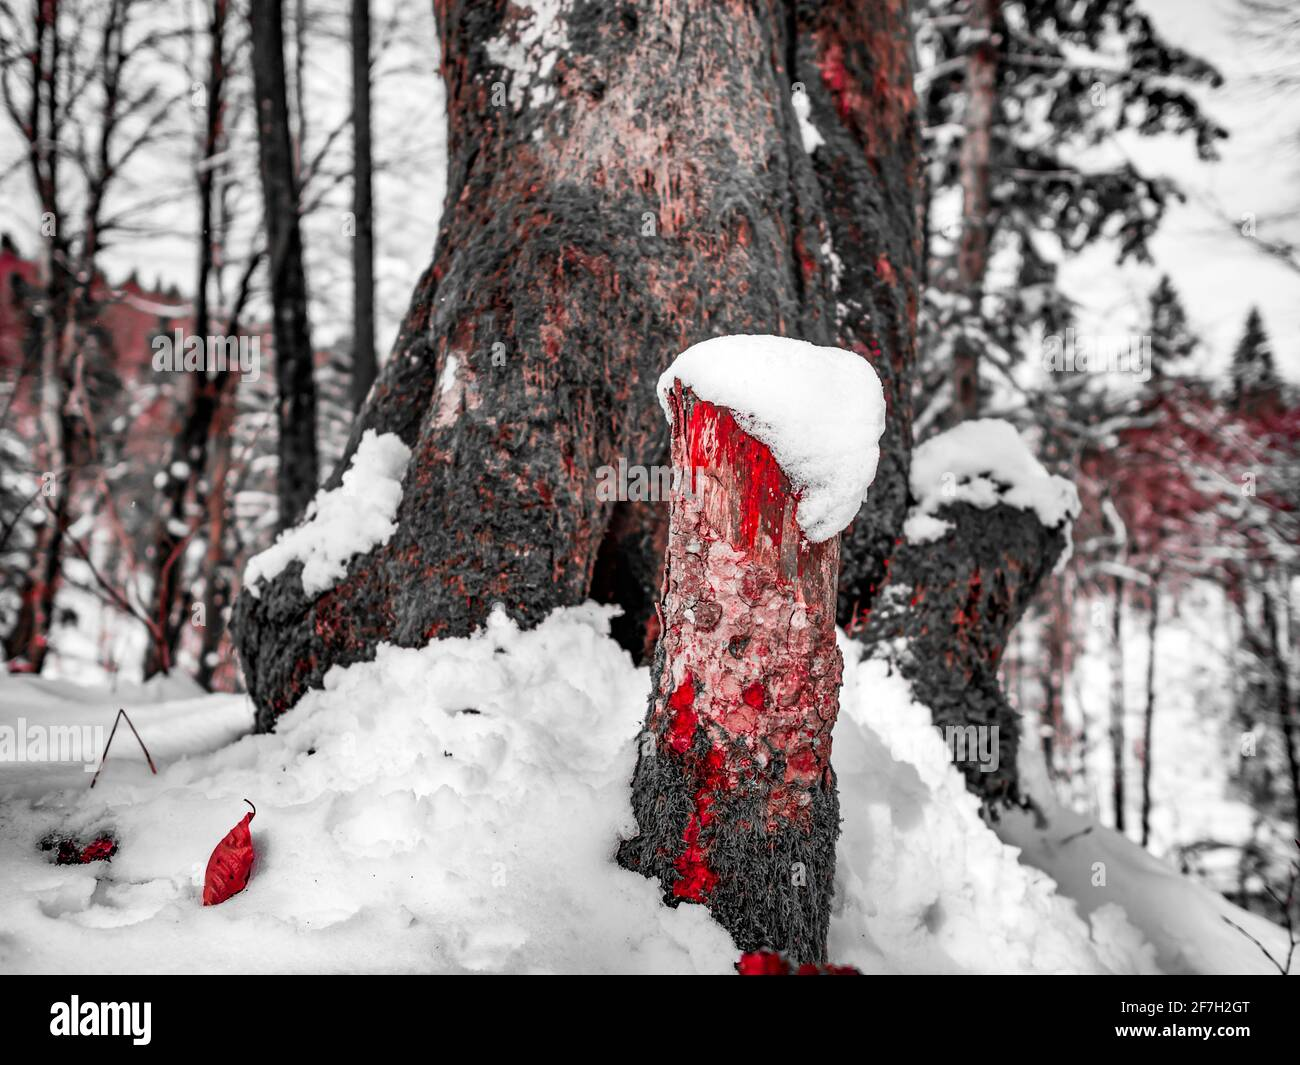 Late Winter in forest detail patch of snow on low cut tree trunk arty artistic B&W mix Red altered color Stock Photo